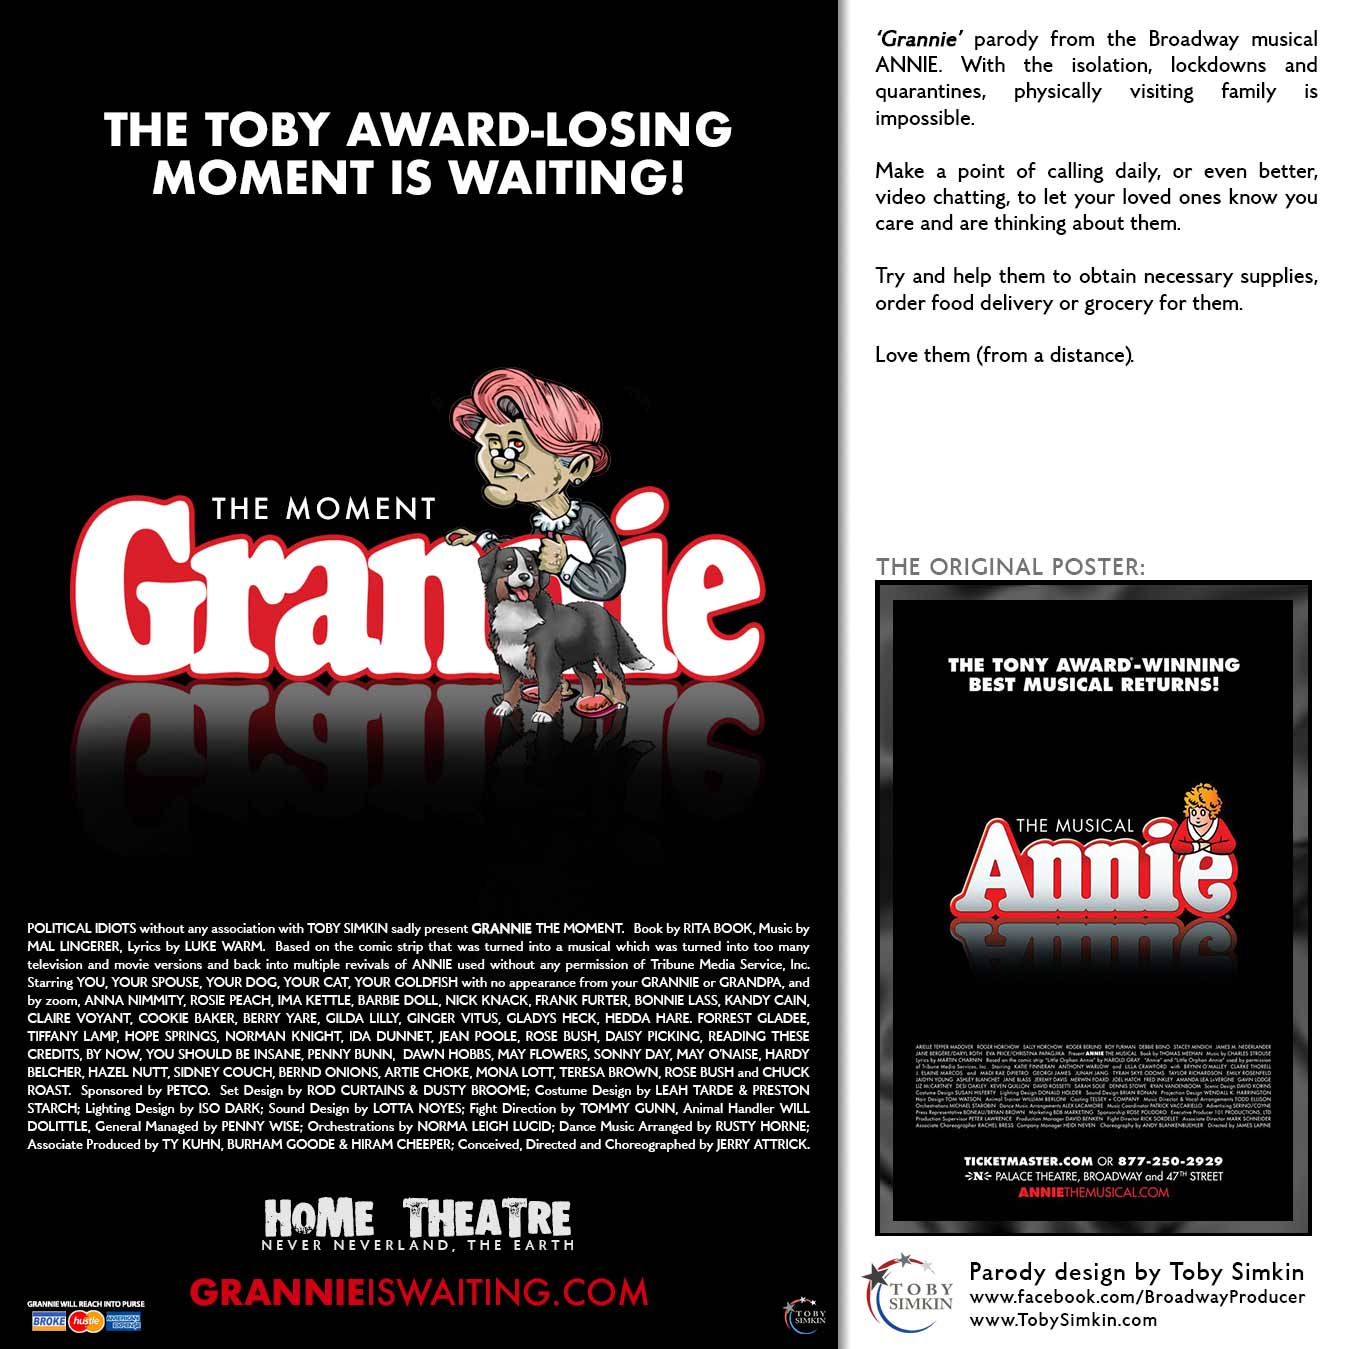 parody from the Broadway musical ANNIE.